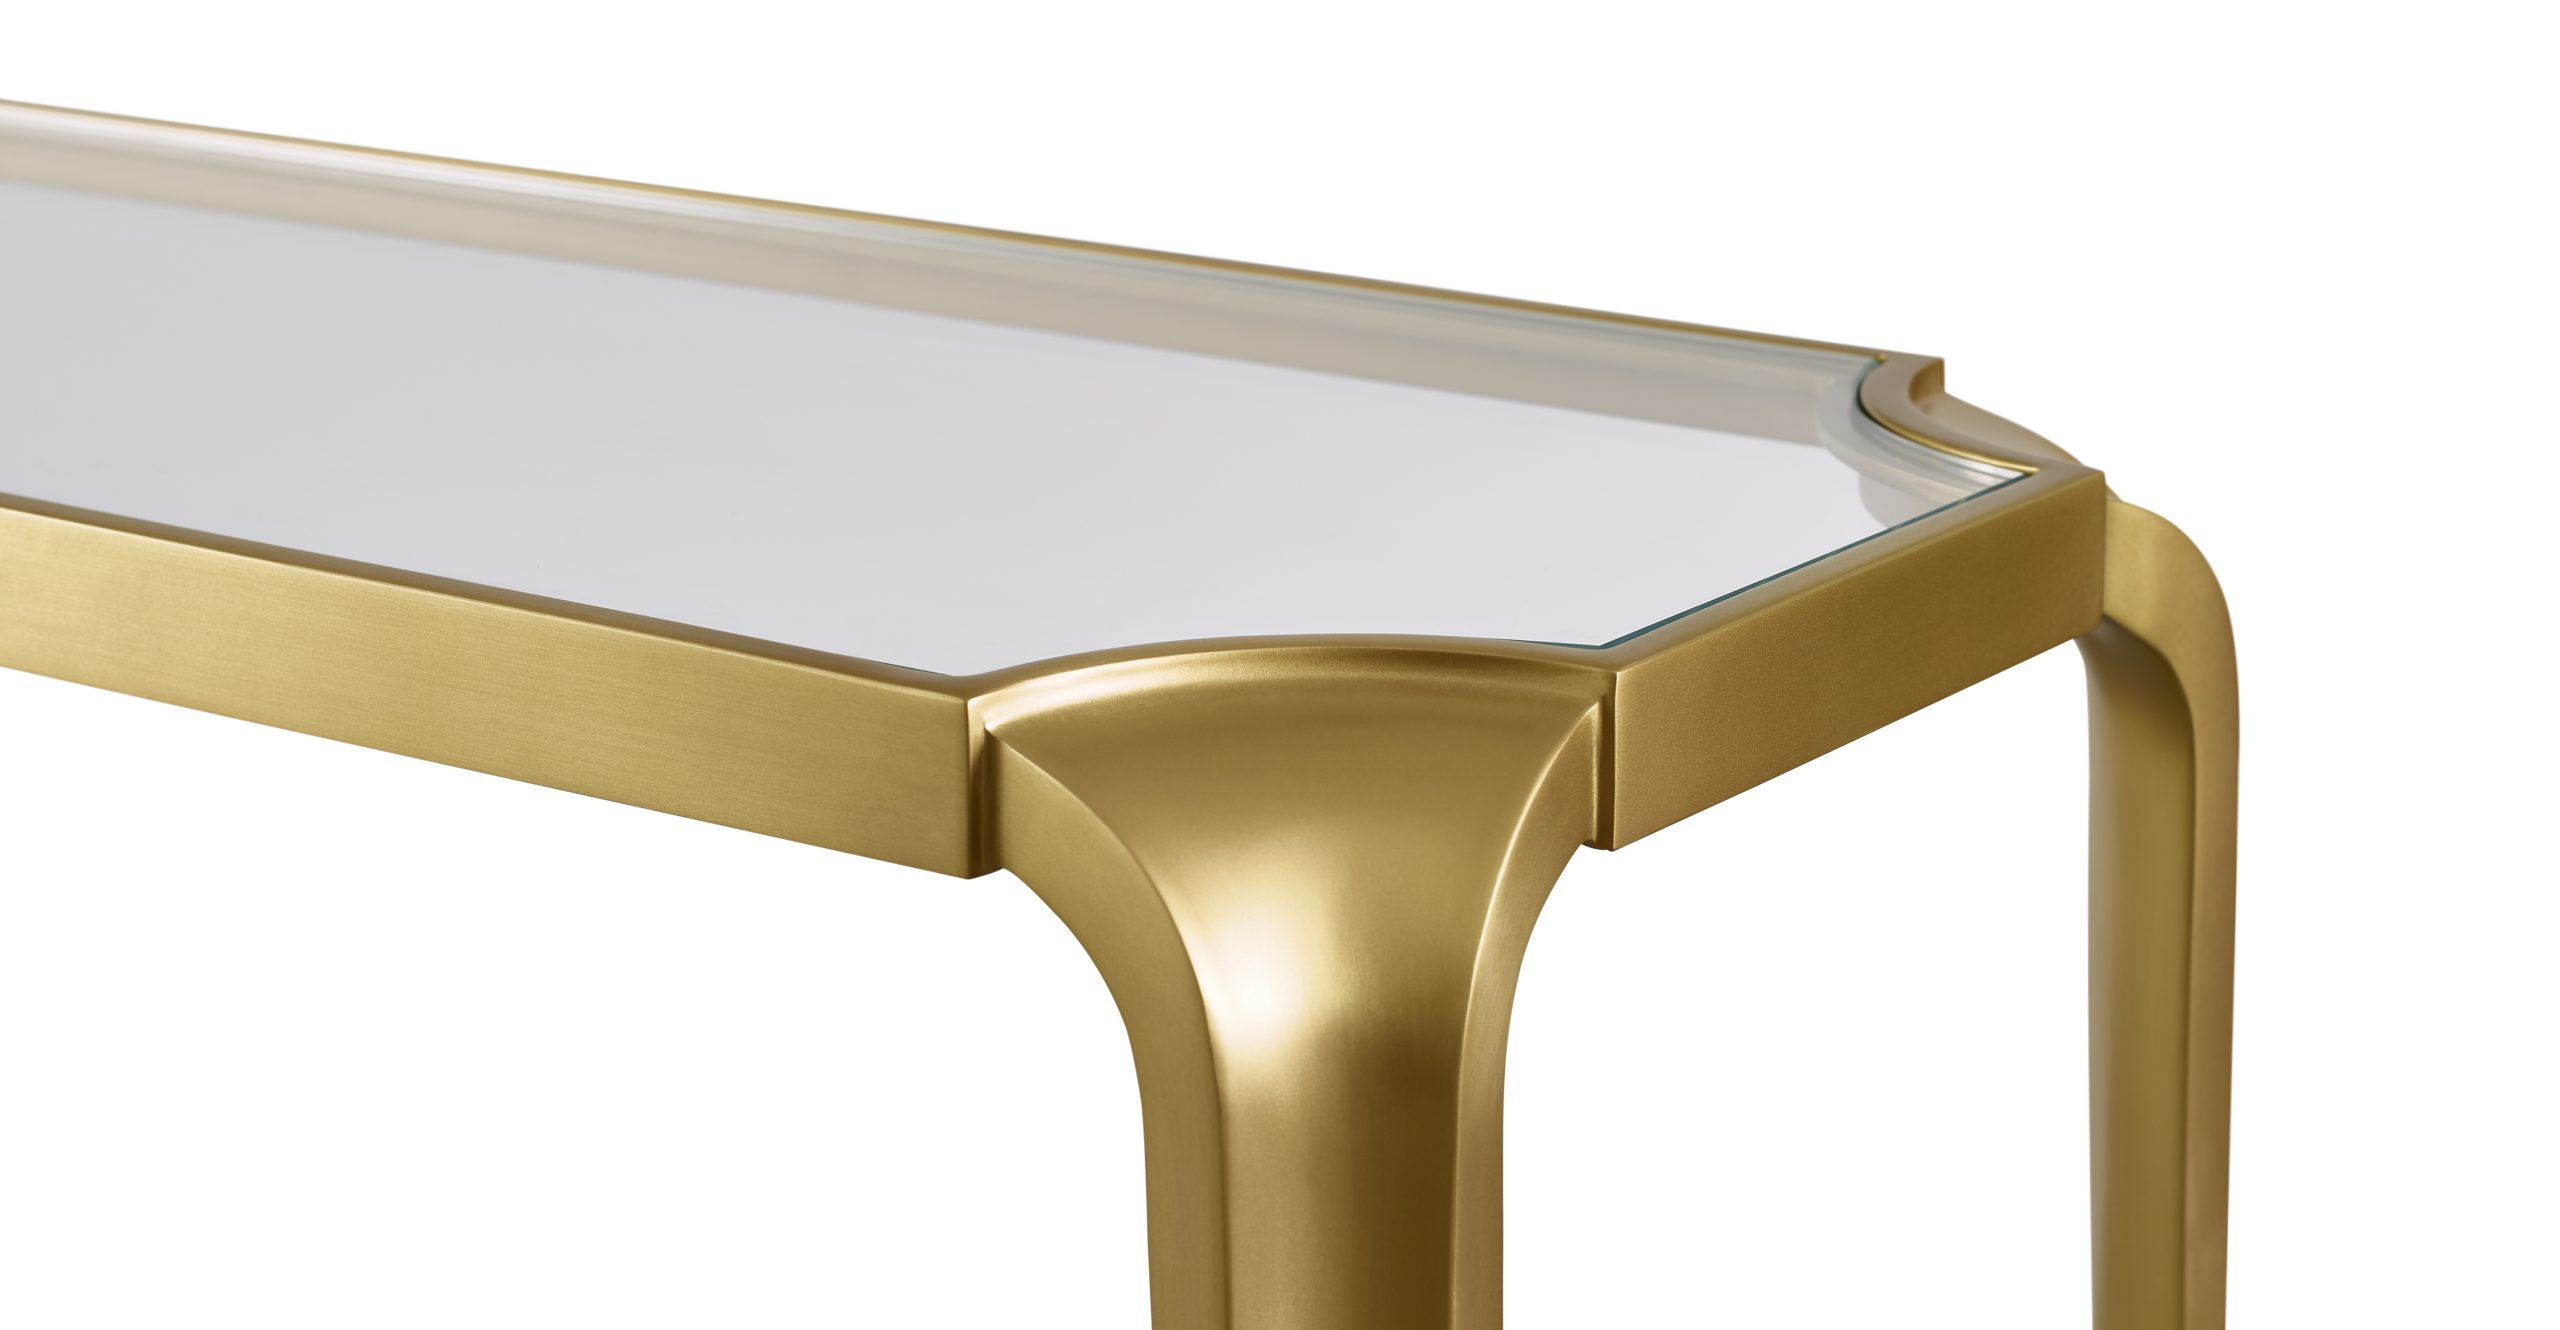 Baker_products_WNWN_lotus_console_table_BAA3065_DETAIL-scaled-2